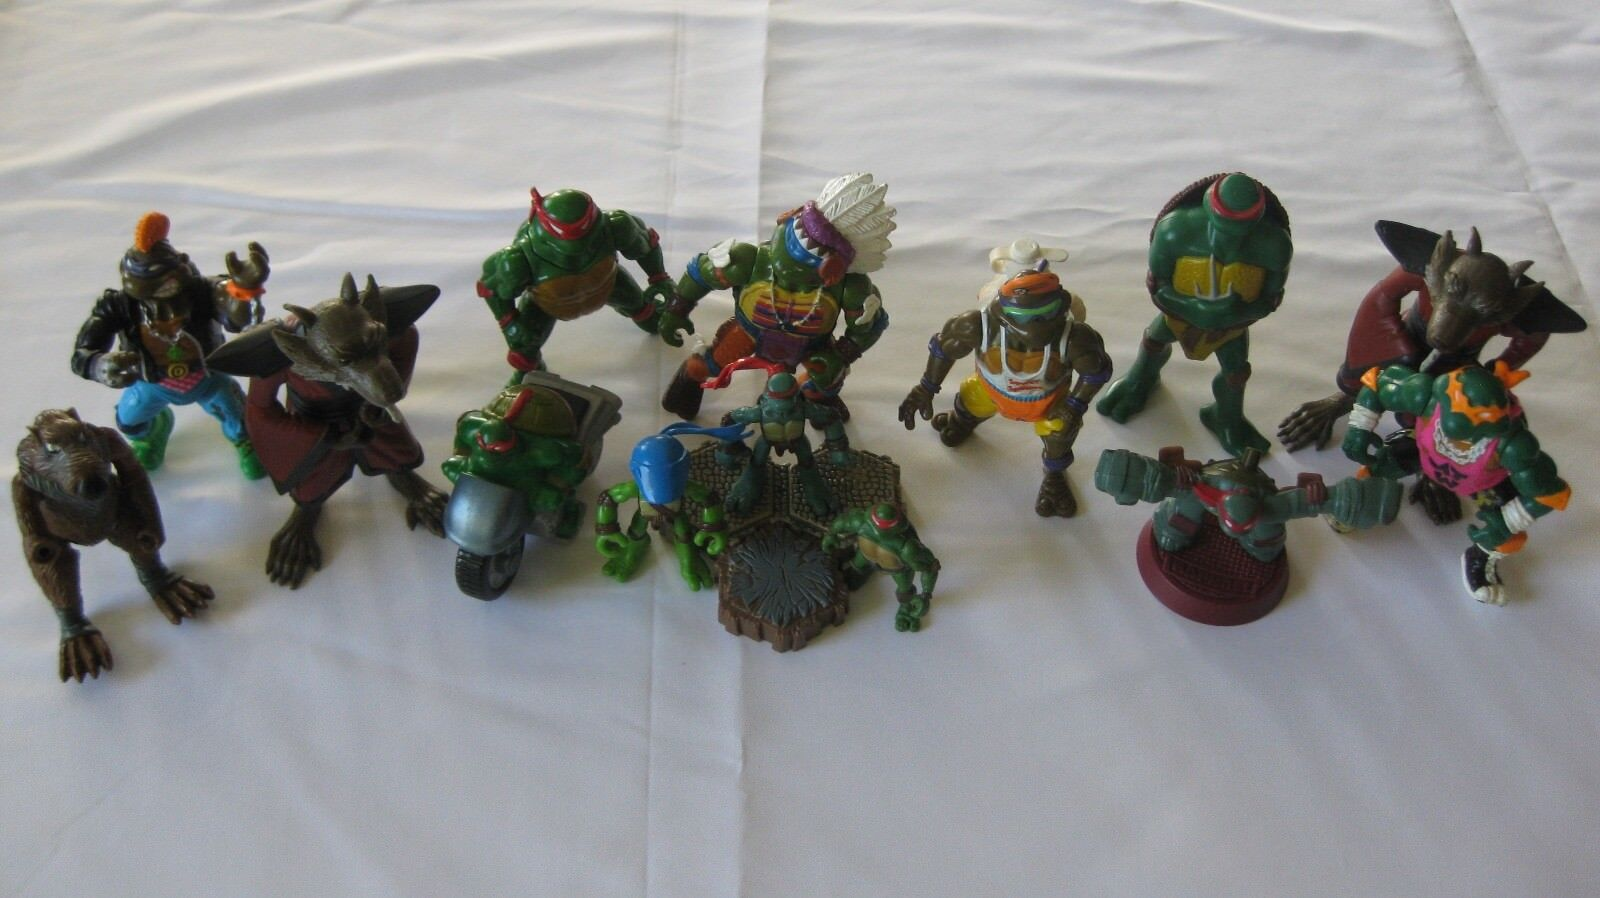 Lot of 14 Vintage Teenage Mutant Ninja Turtles toys various conditions